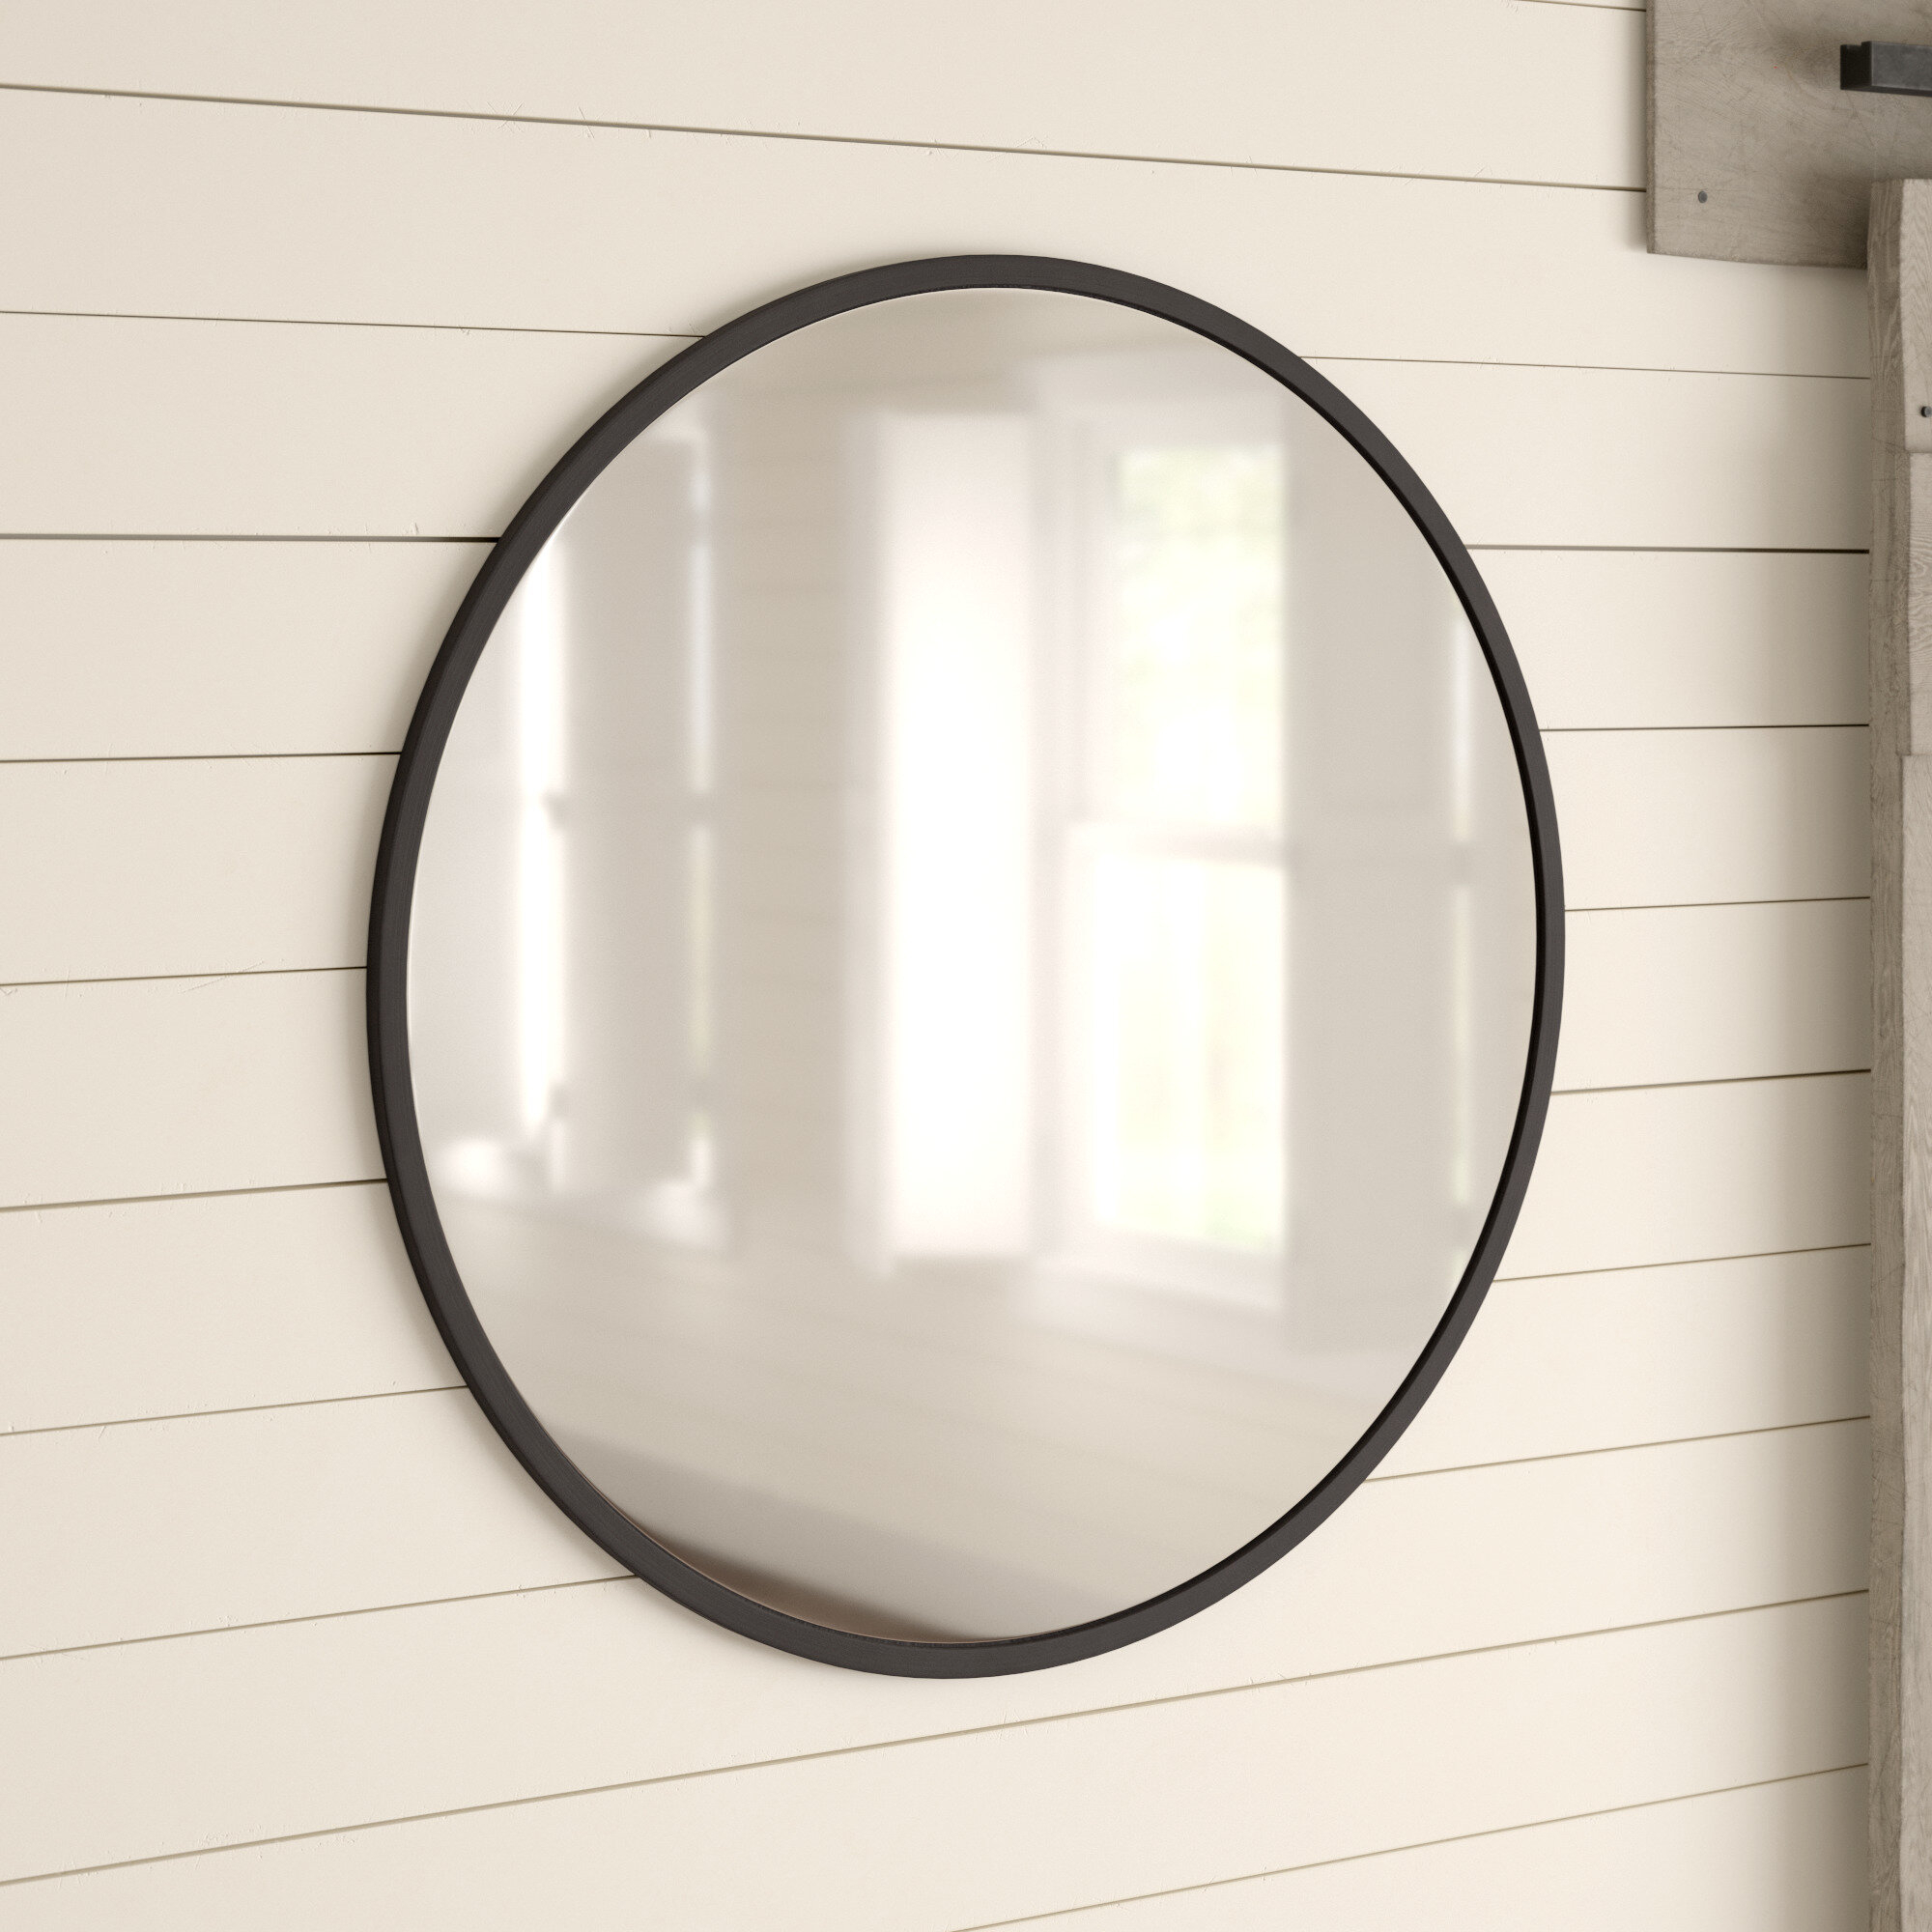 Umbra Hub Modern And Contemporary Accent Mirror Pertaining To Guidinha Modern & Contemporary Accent Mirrors (Image 19 of 20)